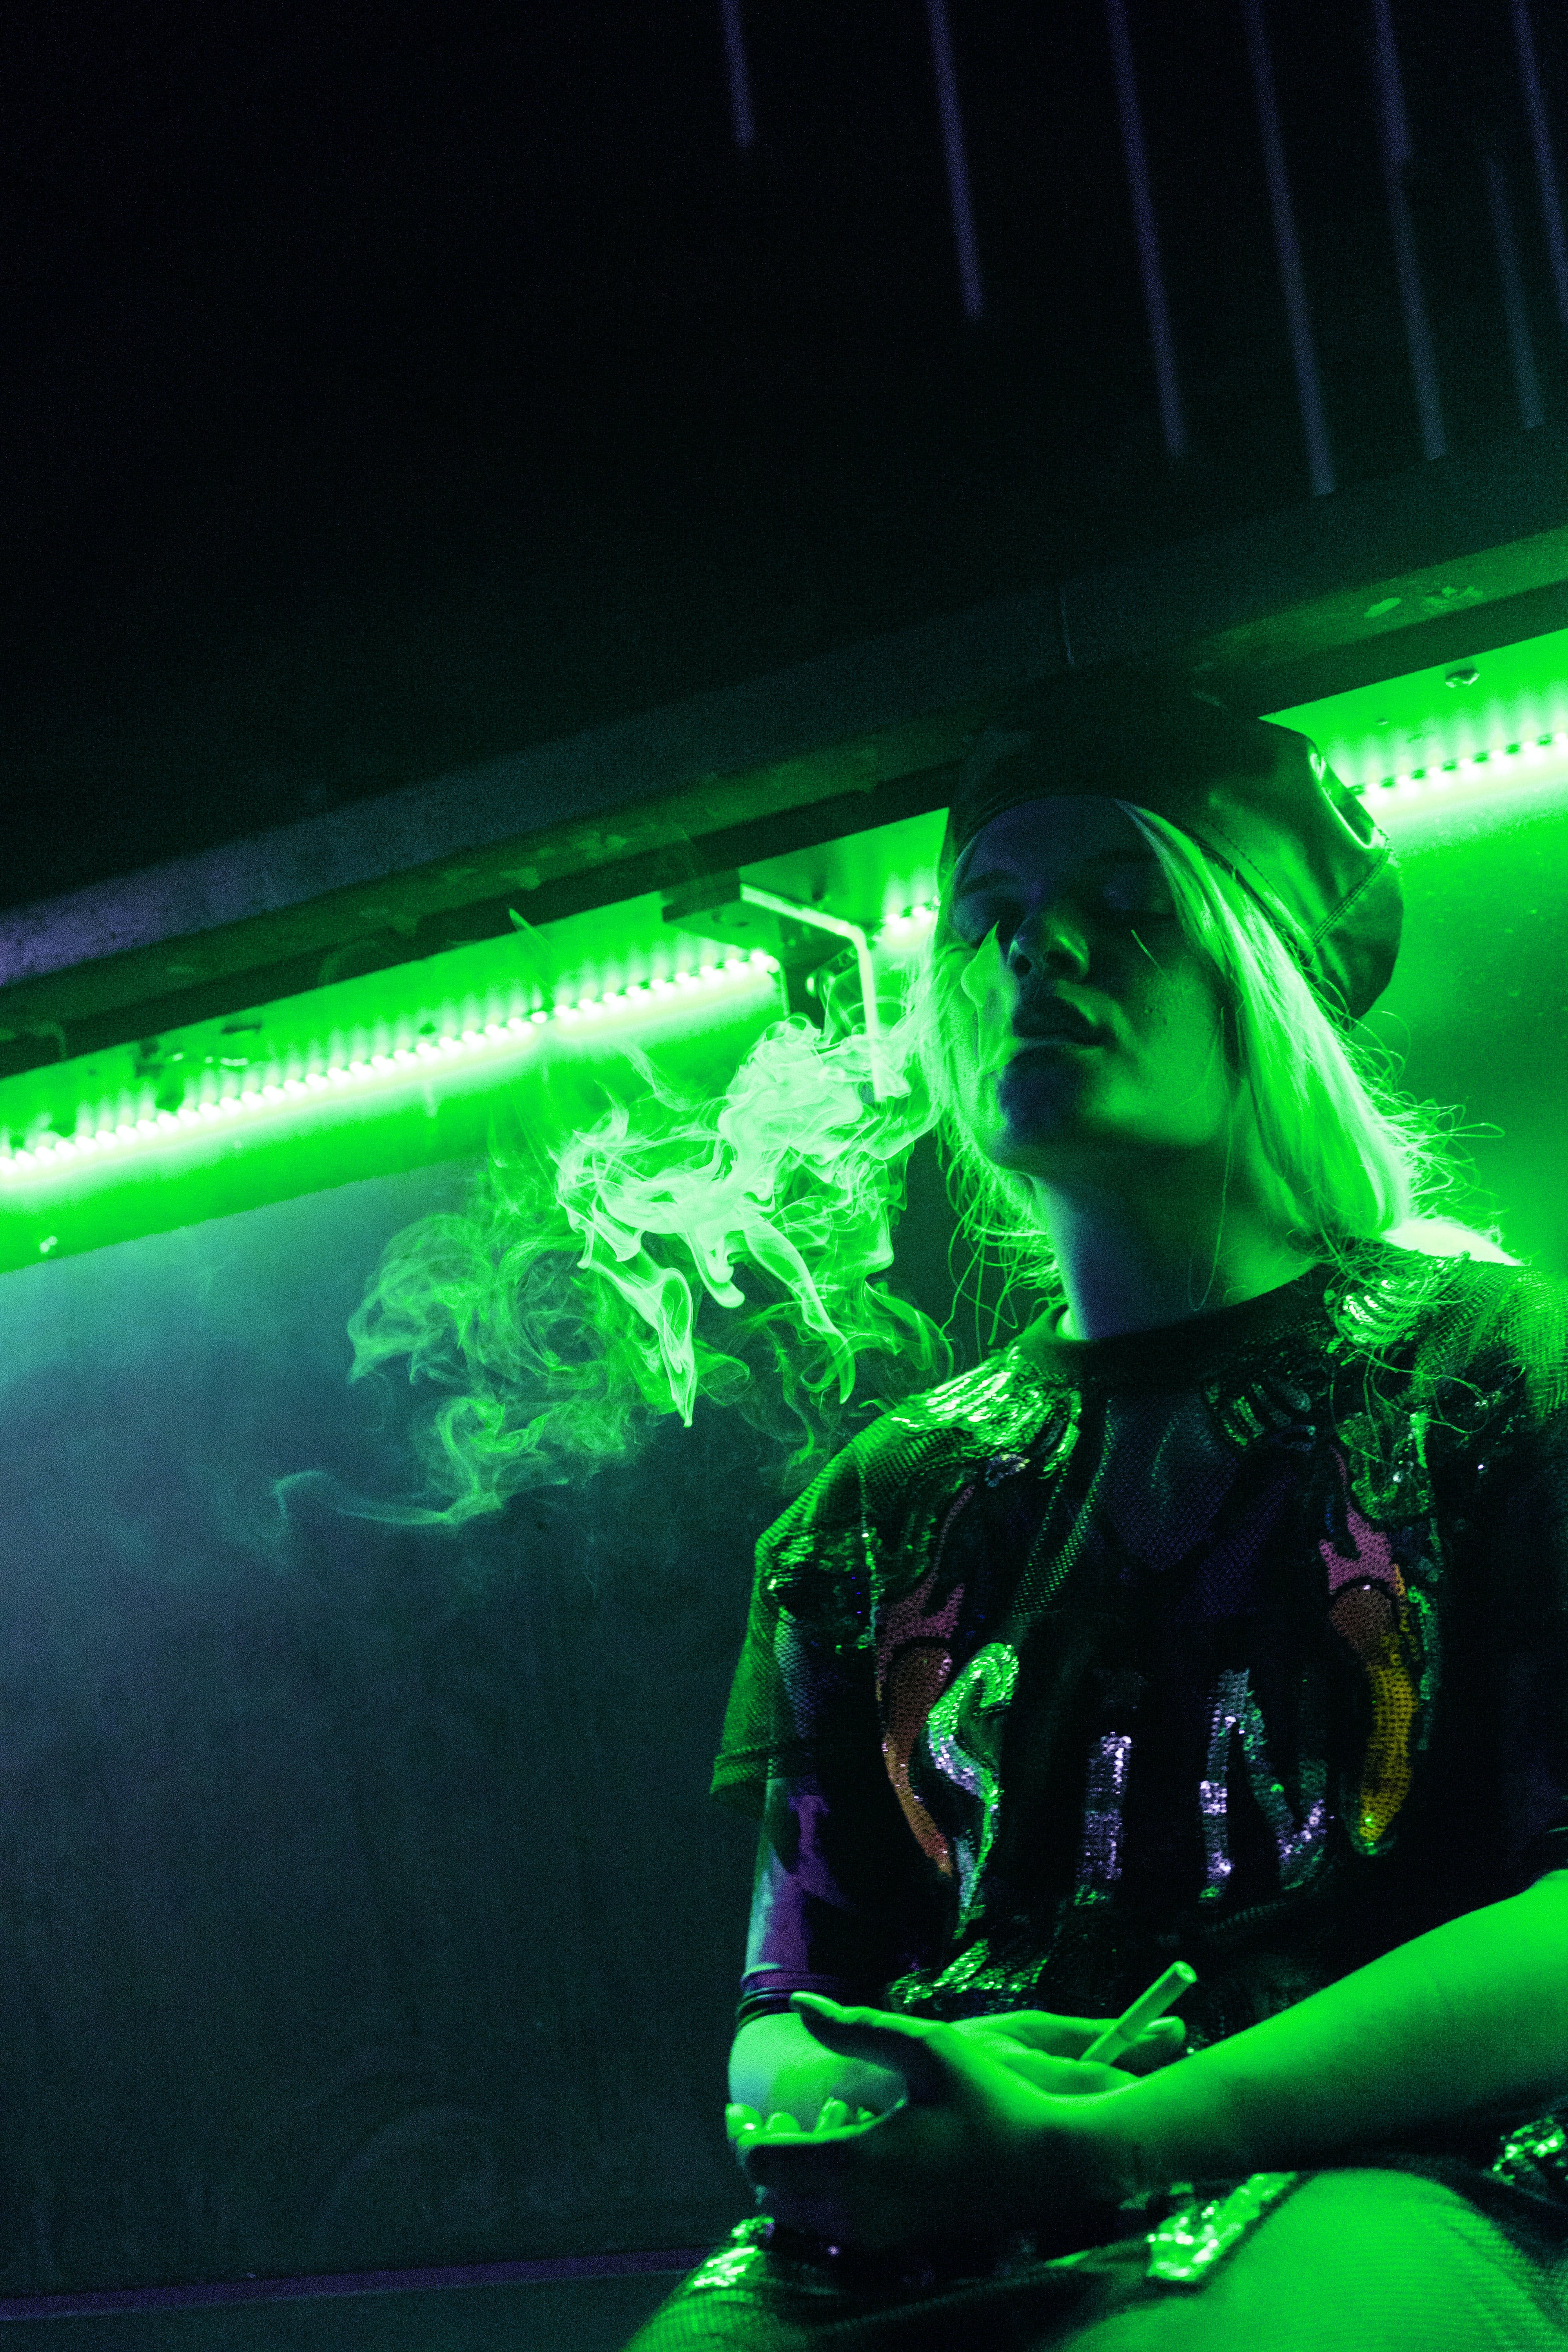 The Herb legalization party was a night to remember